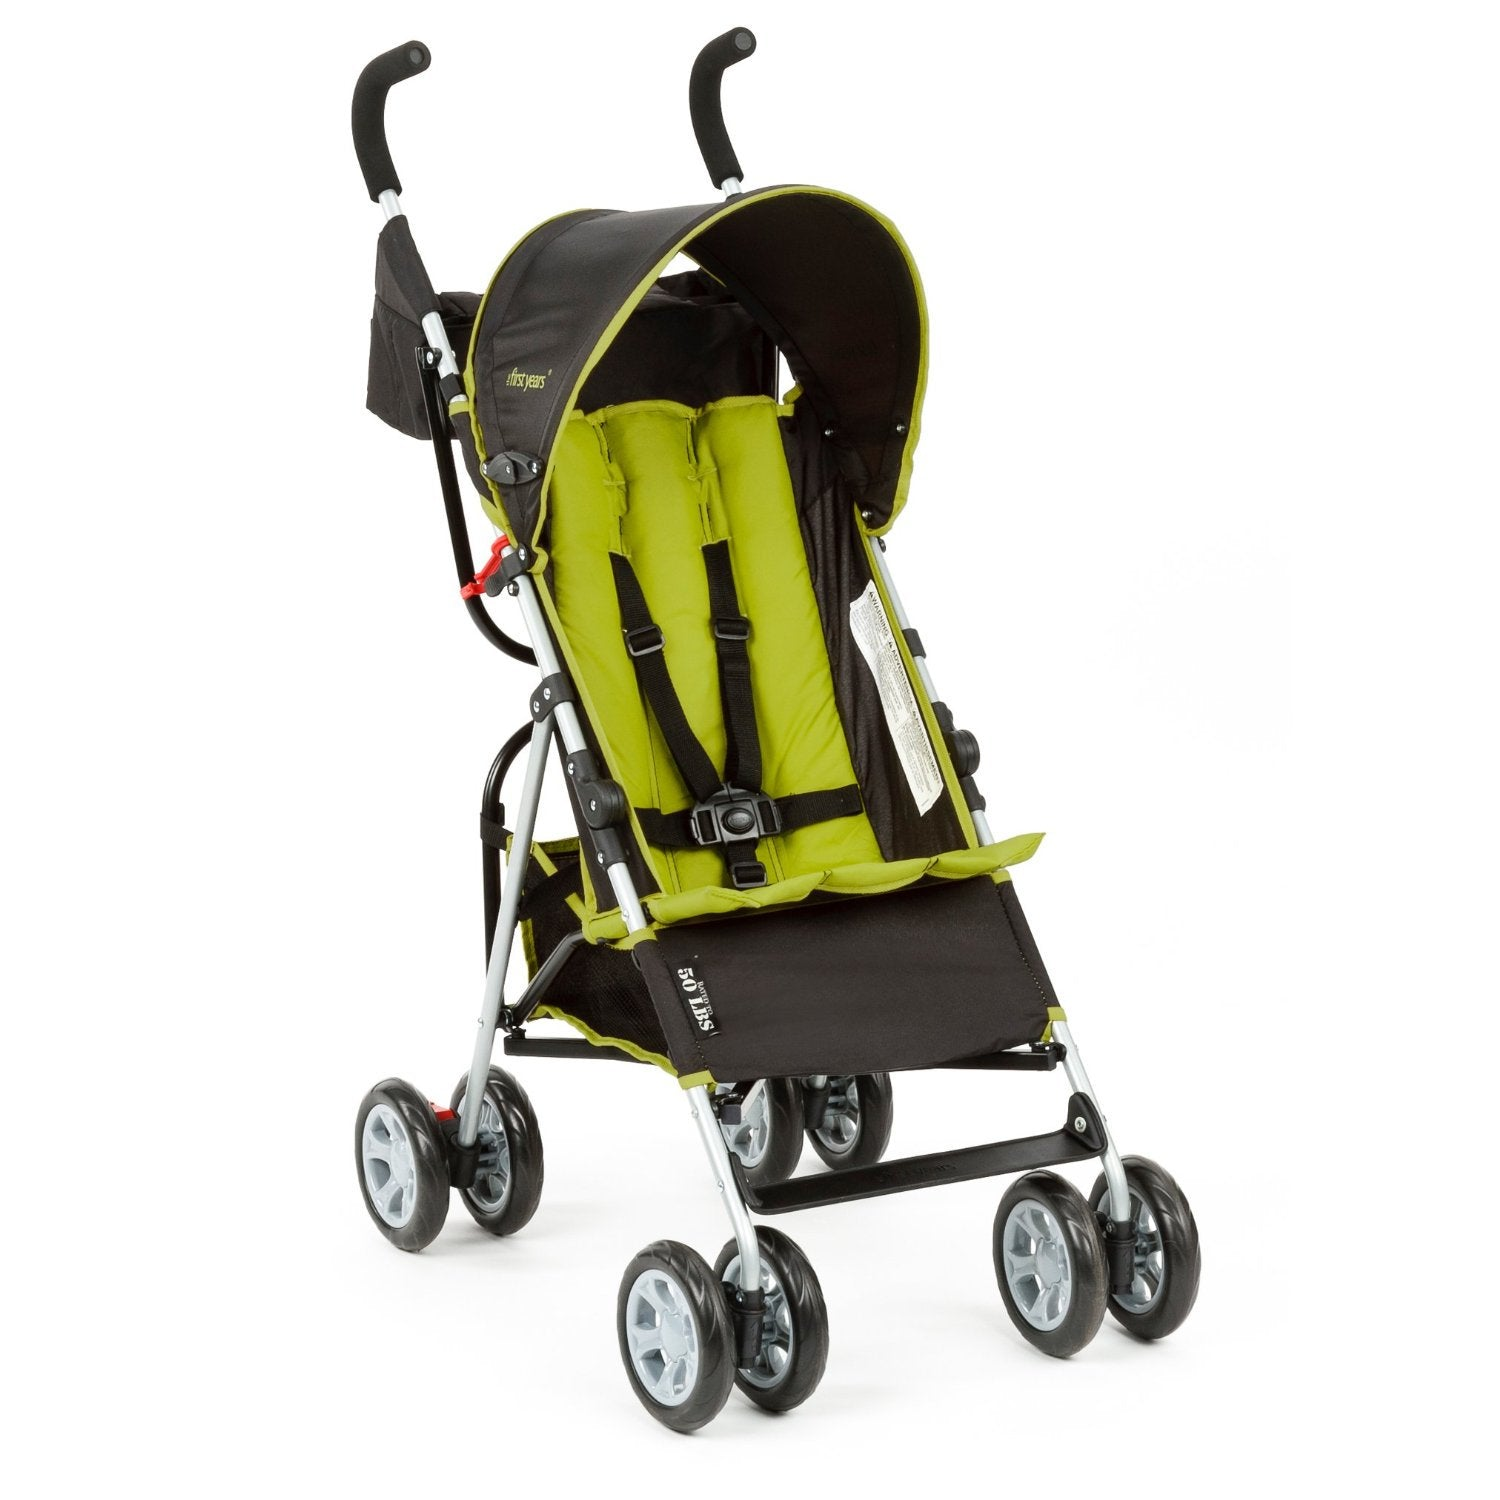 Lawn Mower, Finding Safe Baby Strollers